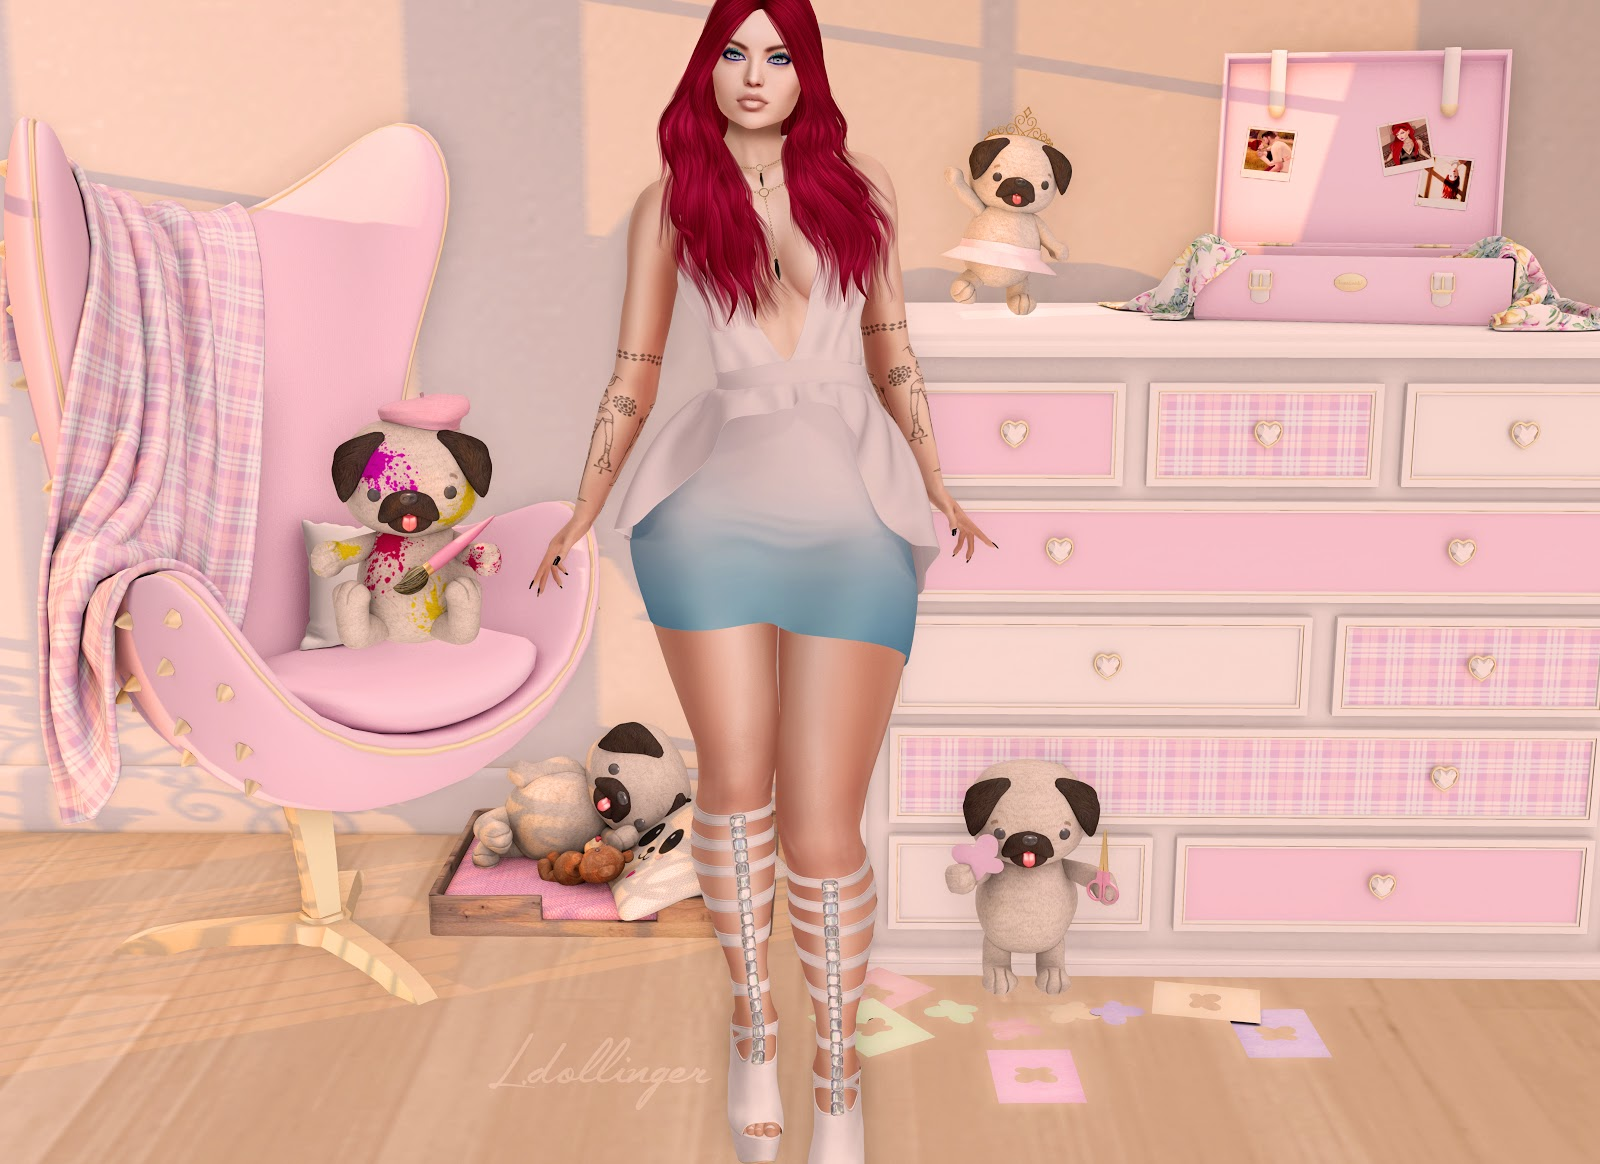 https://www.flickr.com/photos/itdollz/35672517863/in/photostream/lightbox/